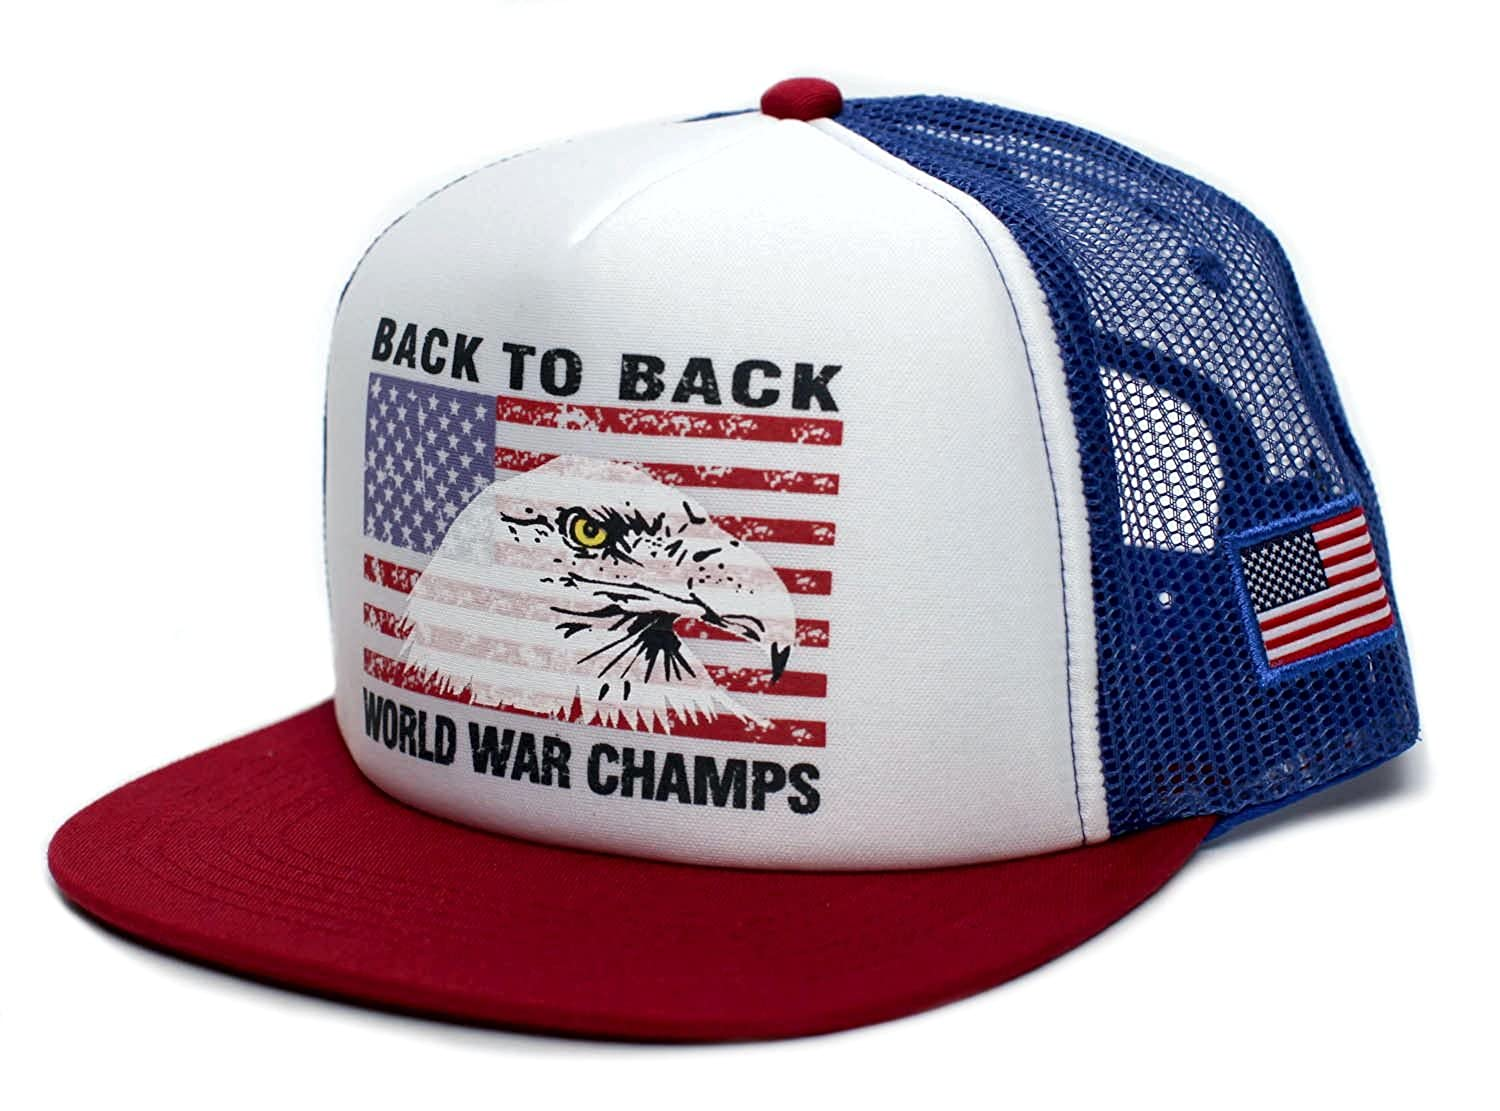 8904233442e Amazon.com  Eagle Back To Back World War Champs Unisex-Adult Cap -One-Size  Royal White Red Flat  Clothing